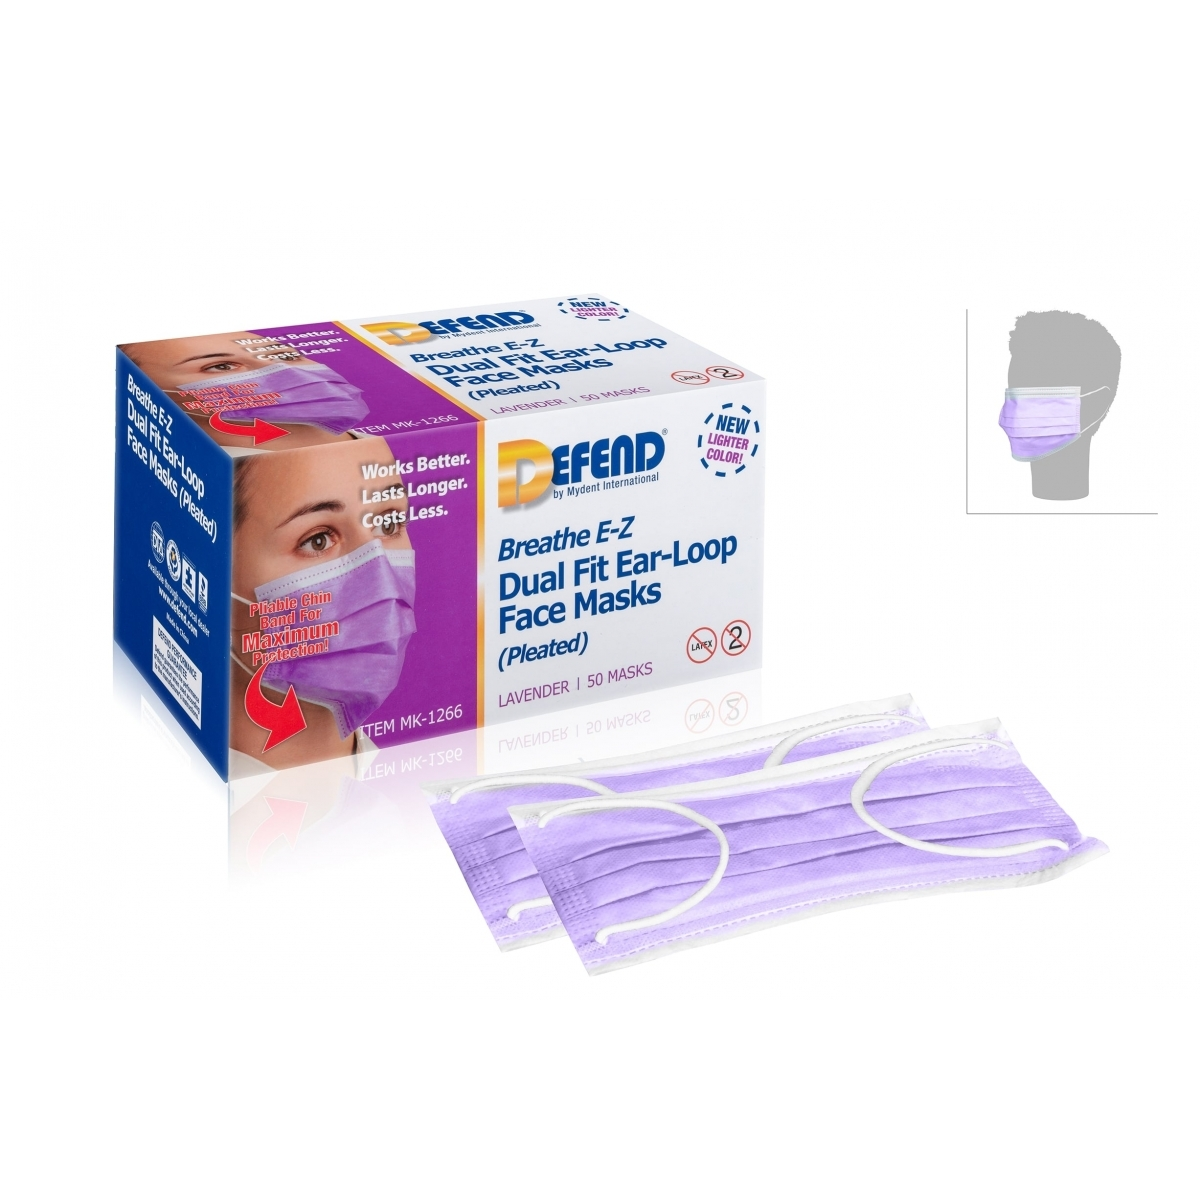 PROTECTIONS - DEFEND - MASQUE CHIRURGICAL DE PROTECTION VIOLET (x50)